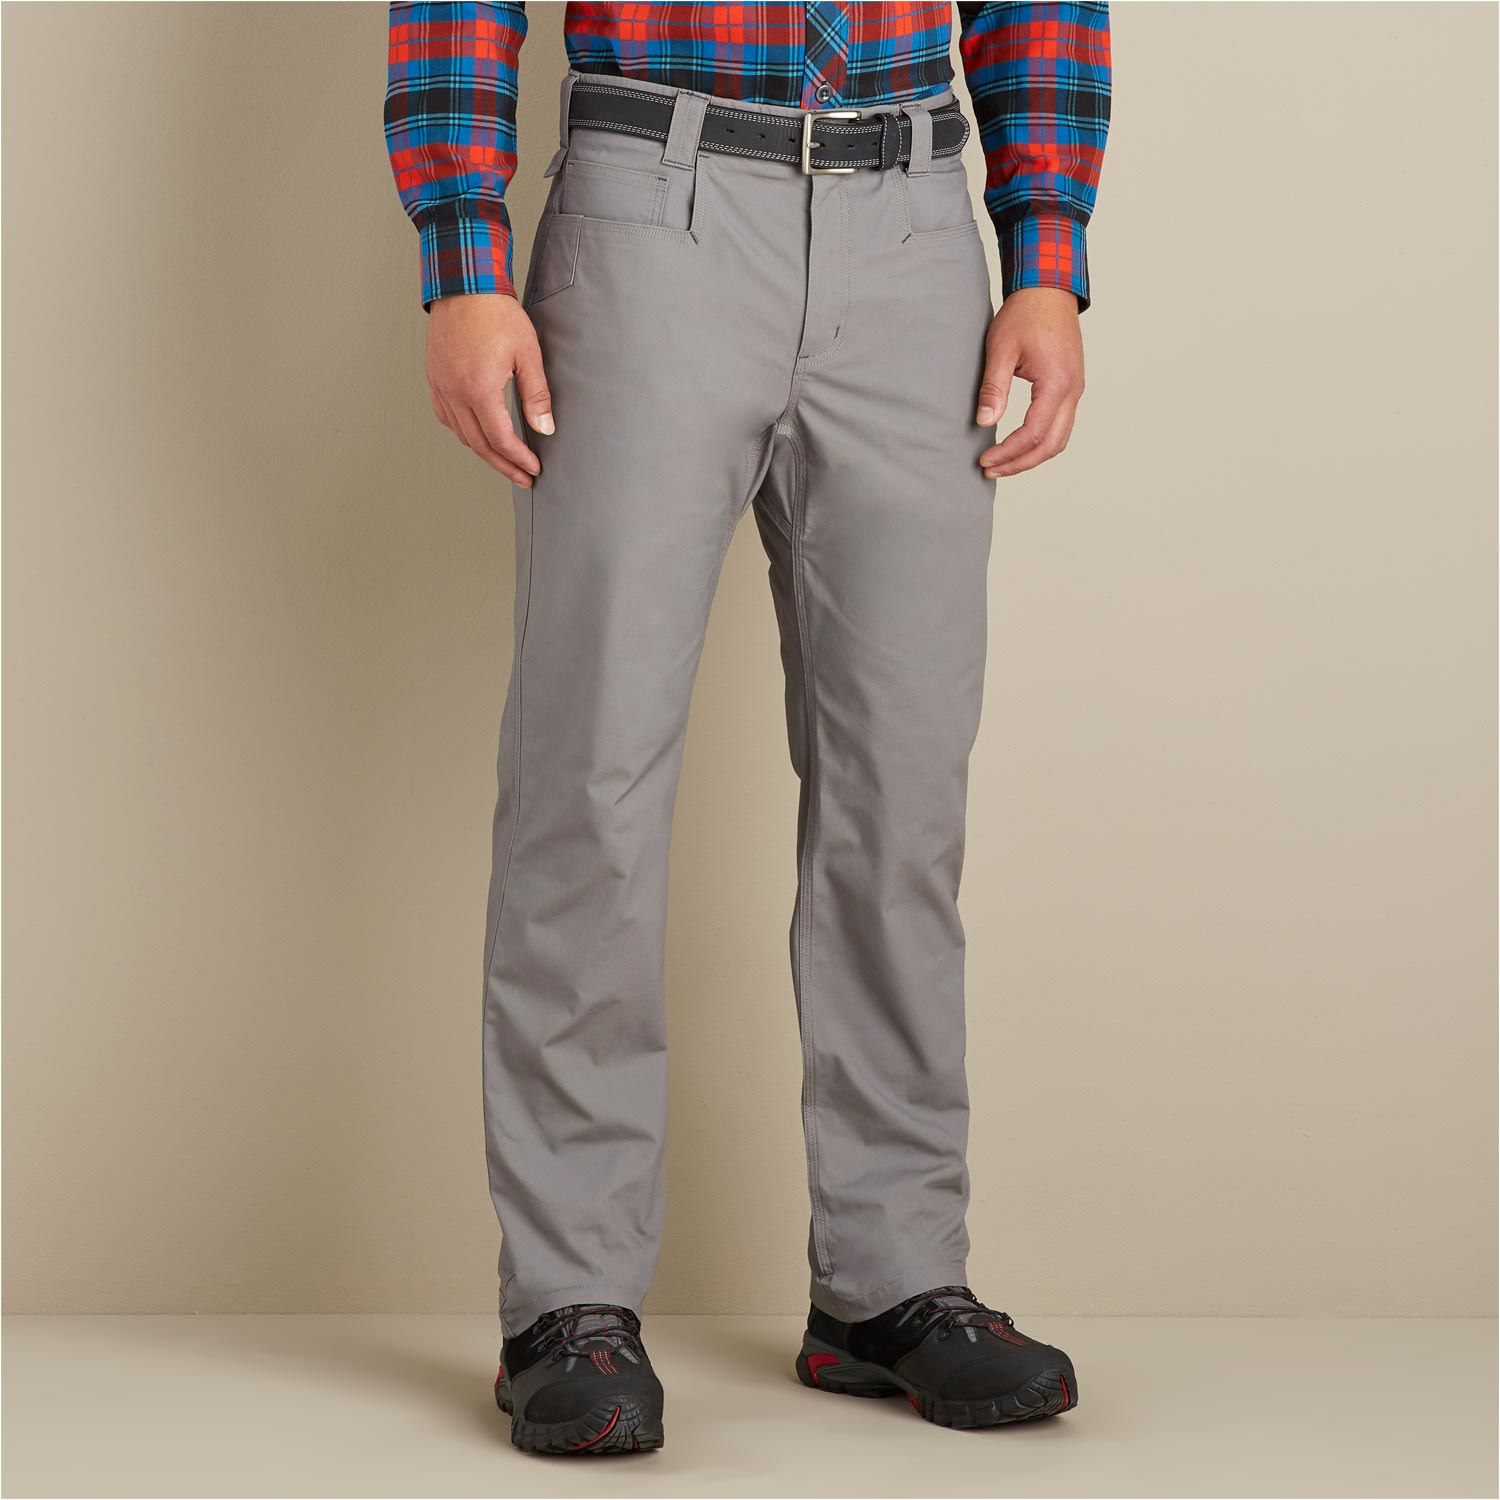 cf47e389 Men's DuluthFlex Ballroom Weekender Trim Fit Jeans | Duluth Trading Company